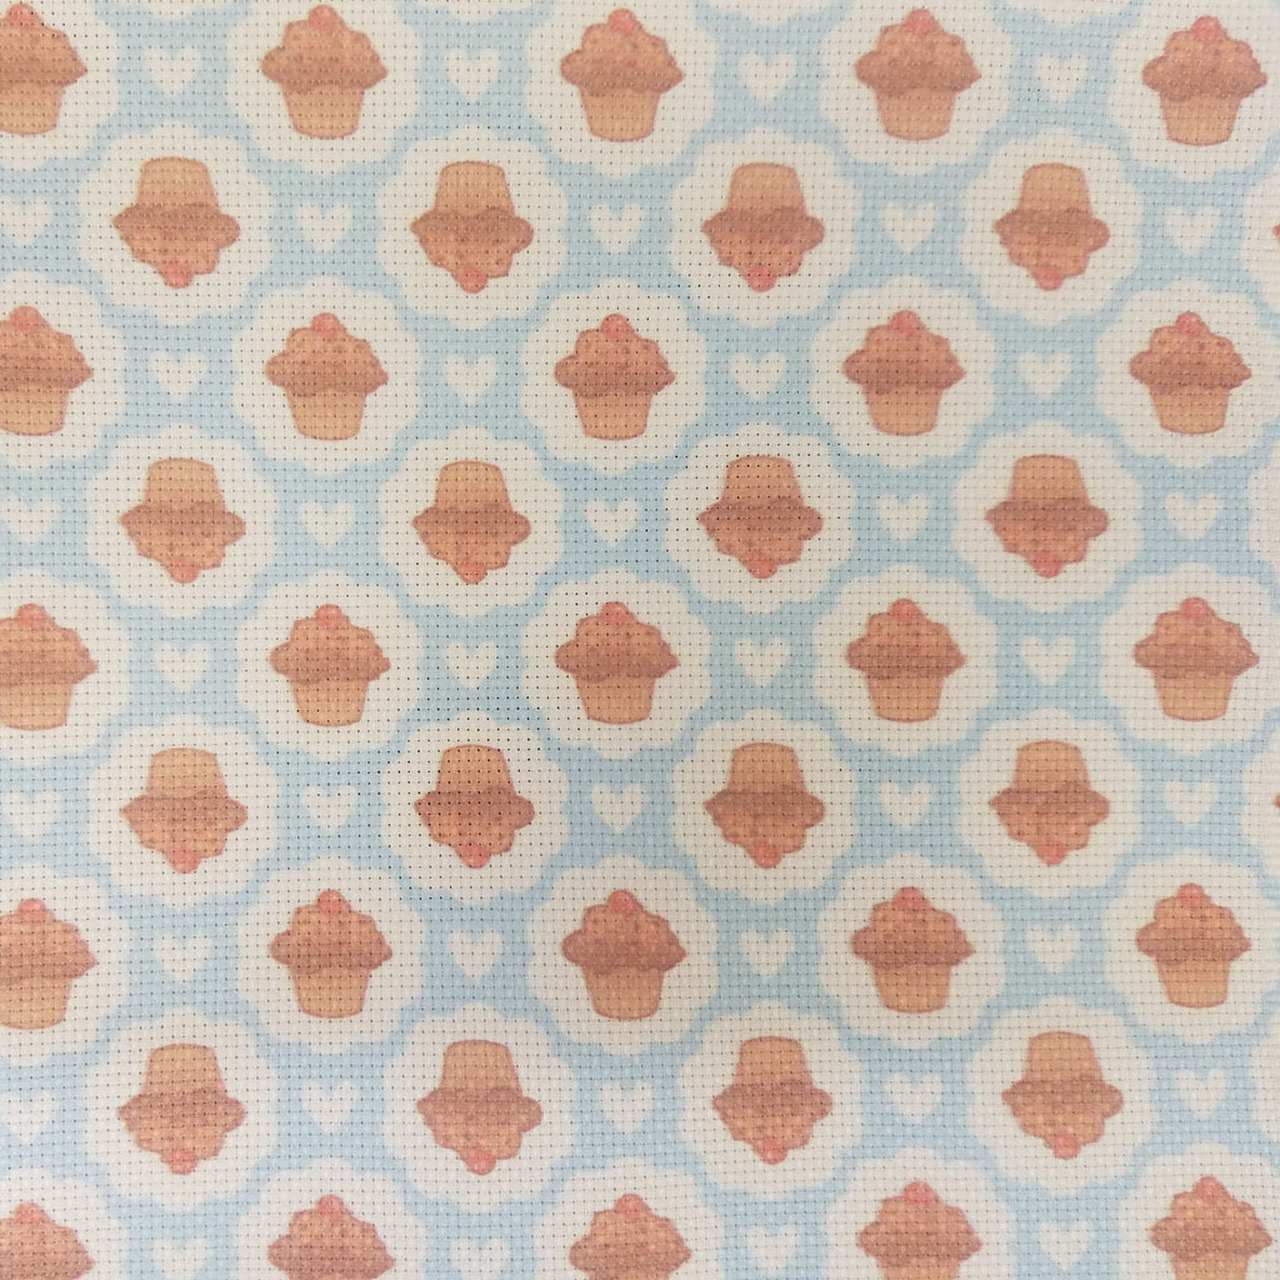 Cupcakes On Blue Patterned Cross Stitch Fabric